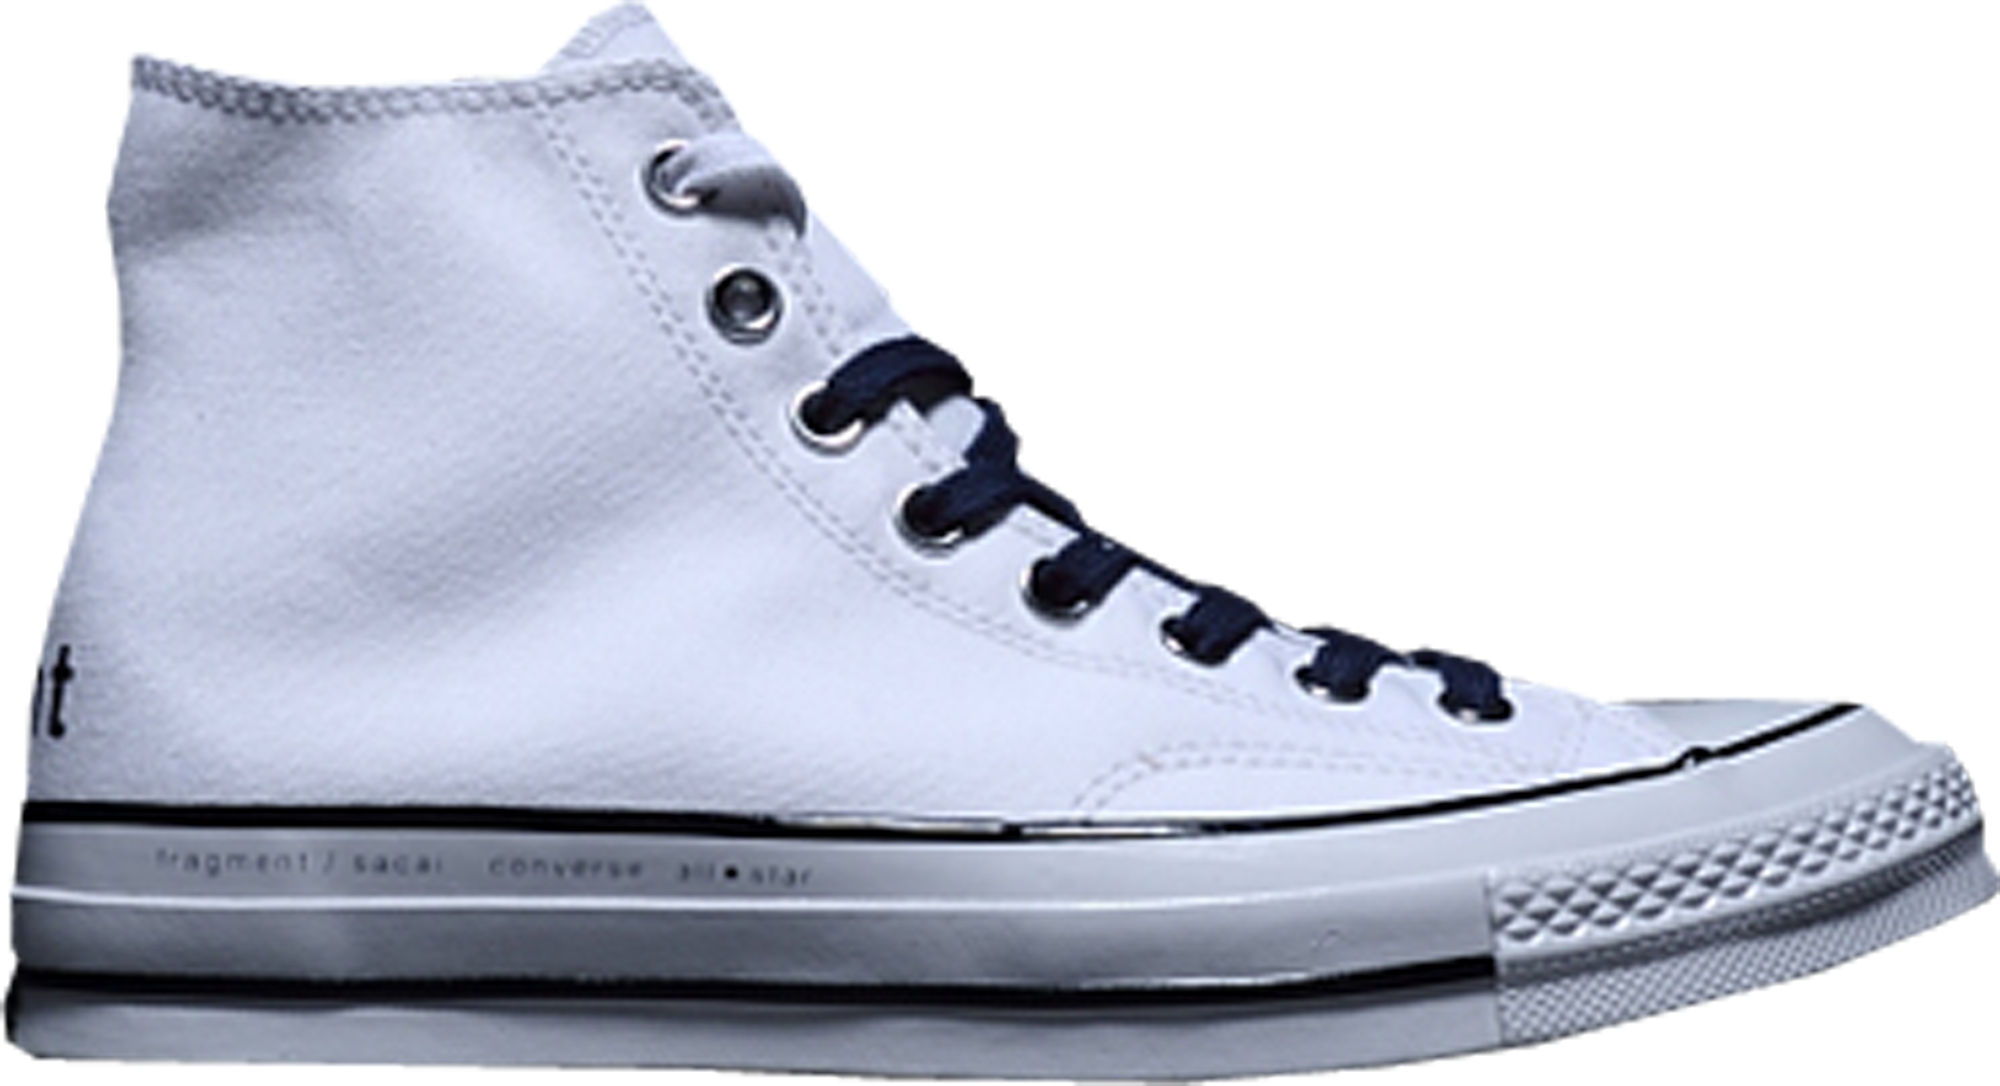 Converse Chuck Taylor All-Star Hi sacai x fragment White